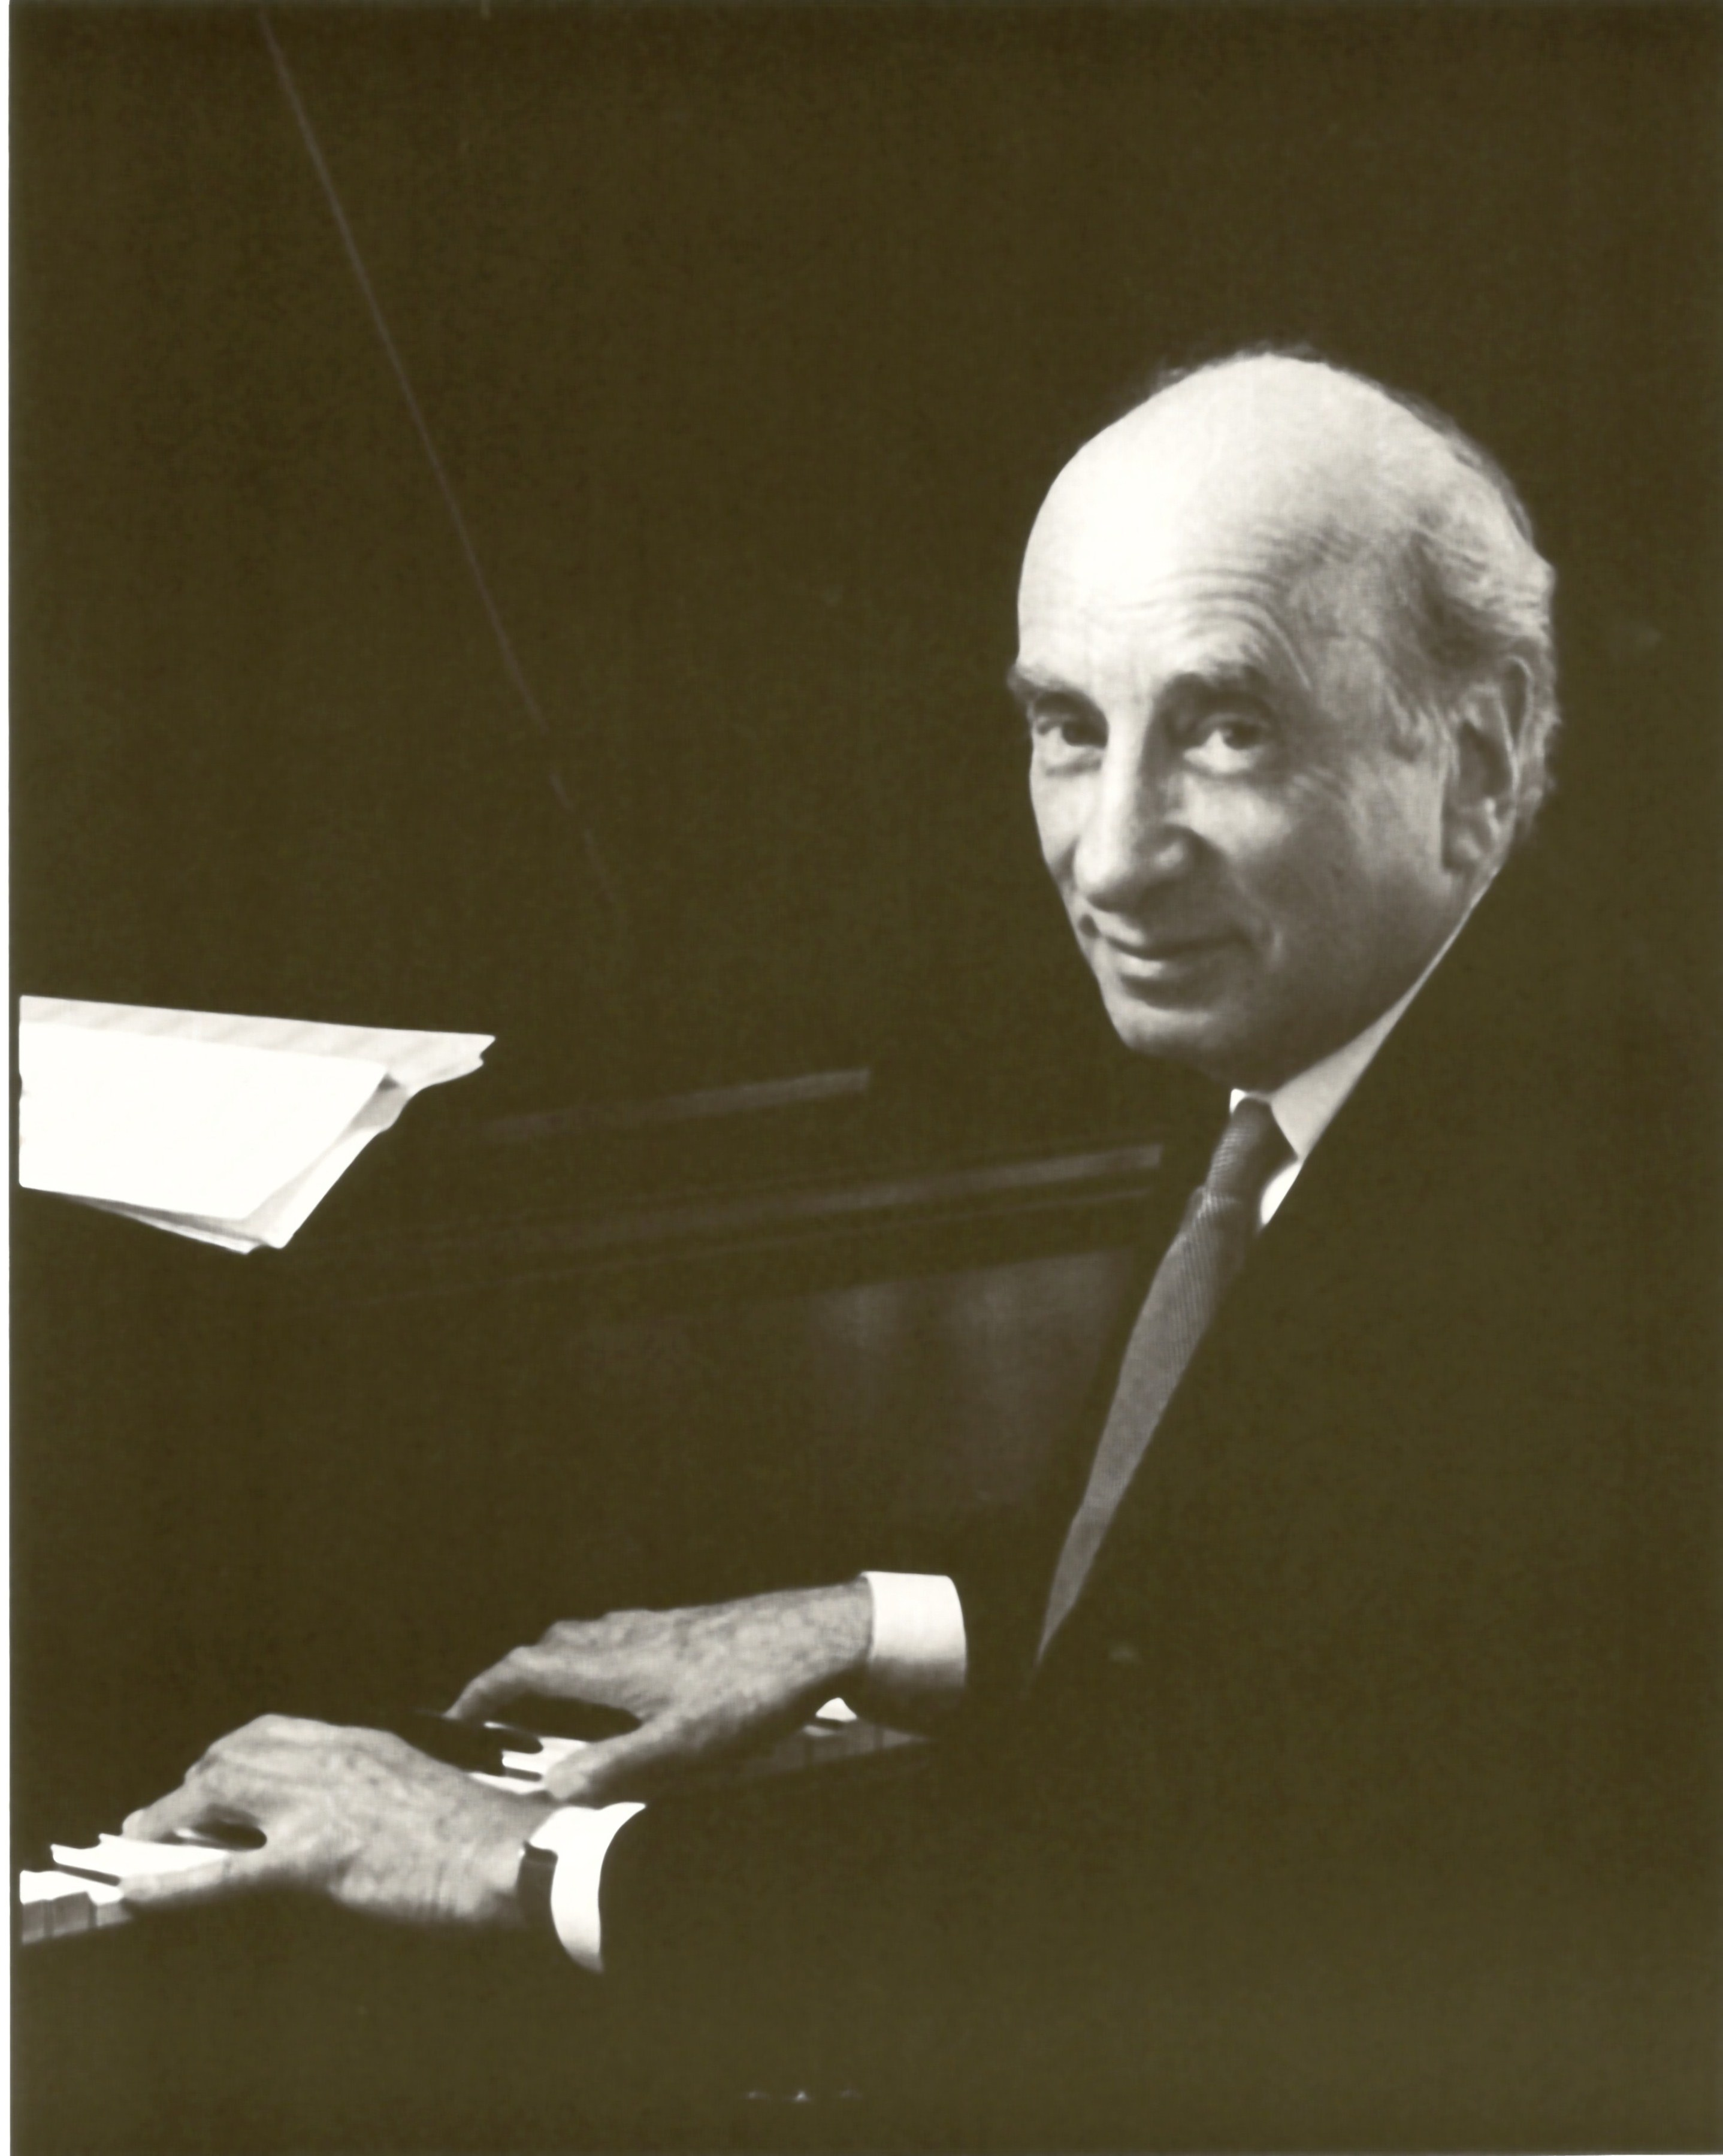 Dick Hyman at the piano